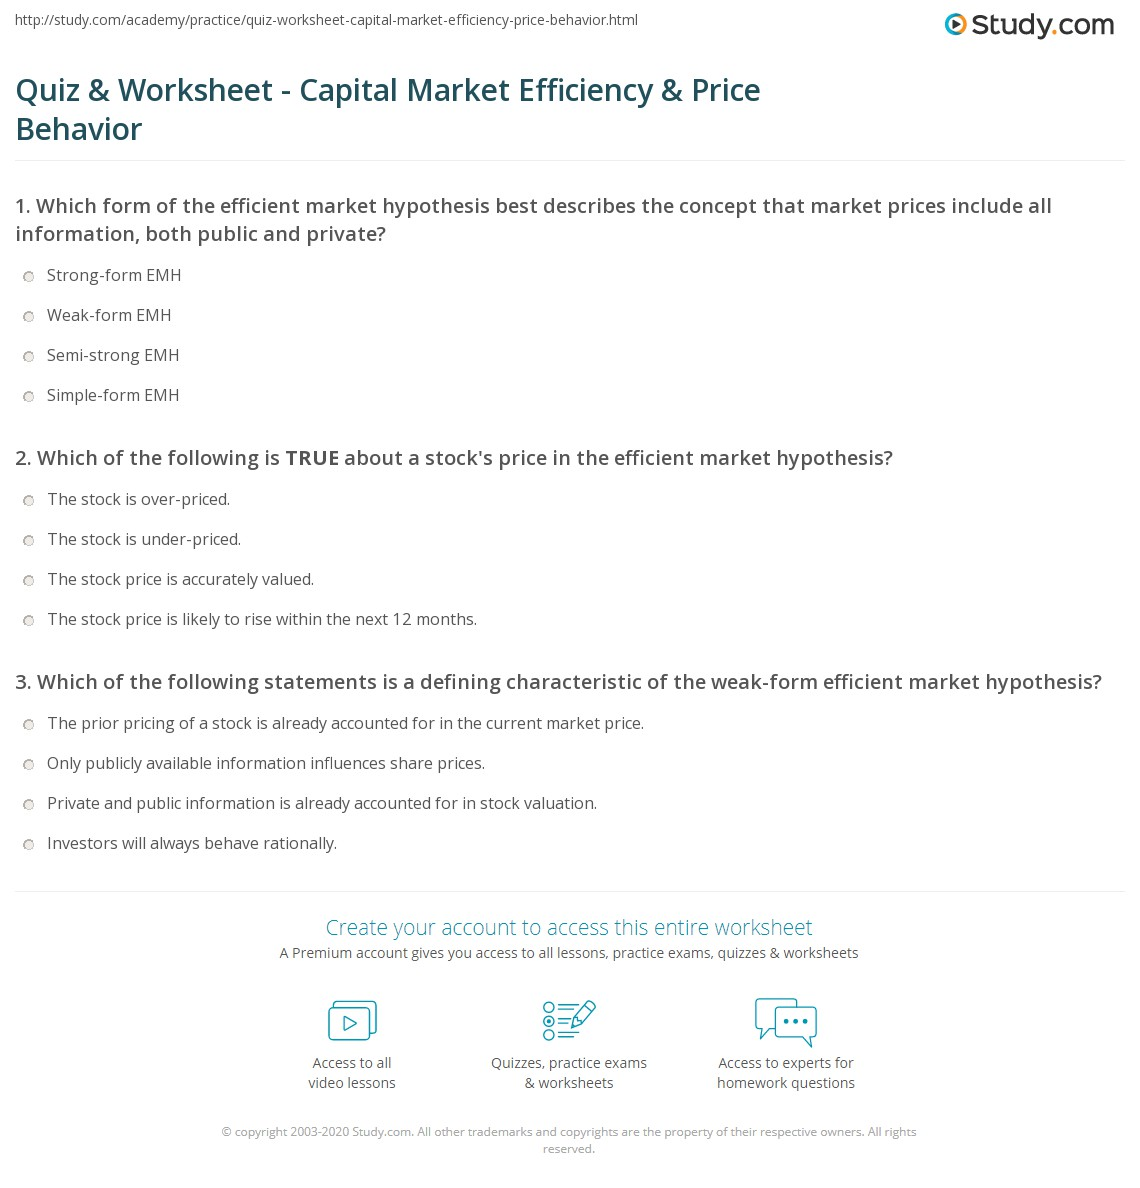 capital market quiz Are you trying to get an equity capital markets or debt capital markets job these are the interview question you'll encounter.